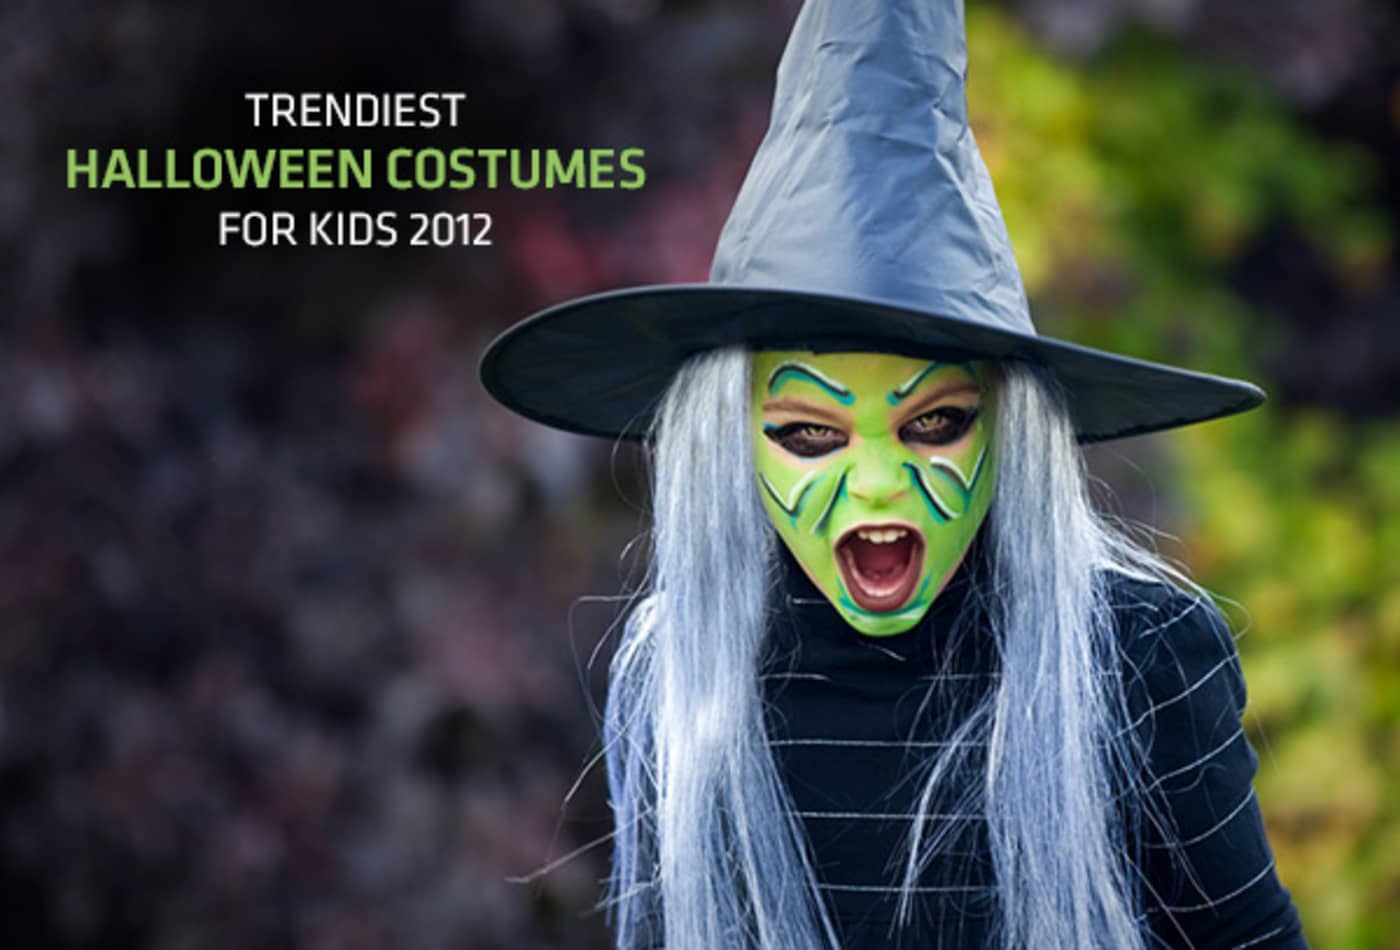 Halloween-costumes-kids-2012-cover.jpg